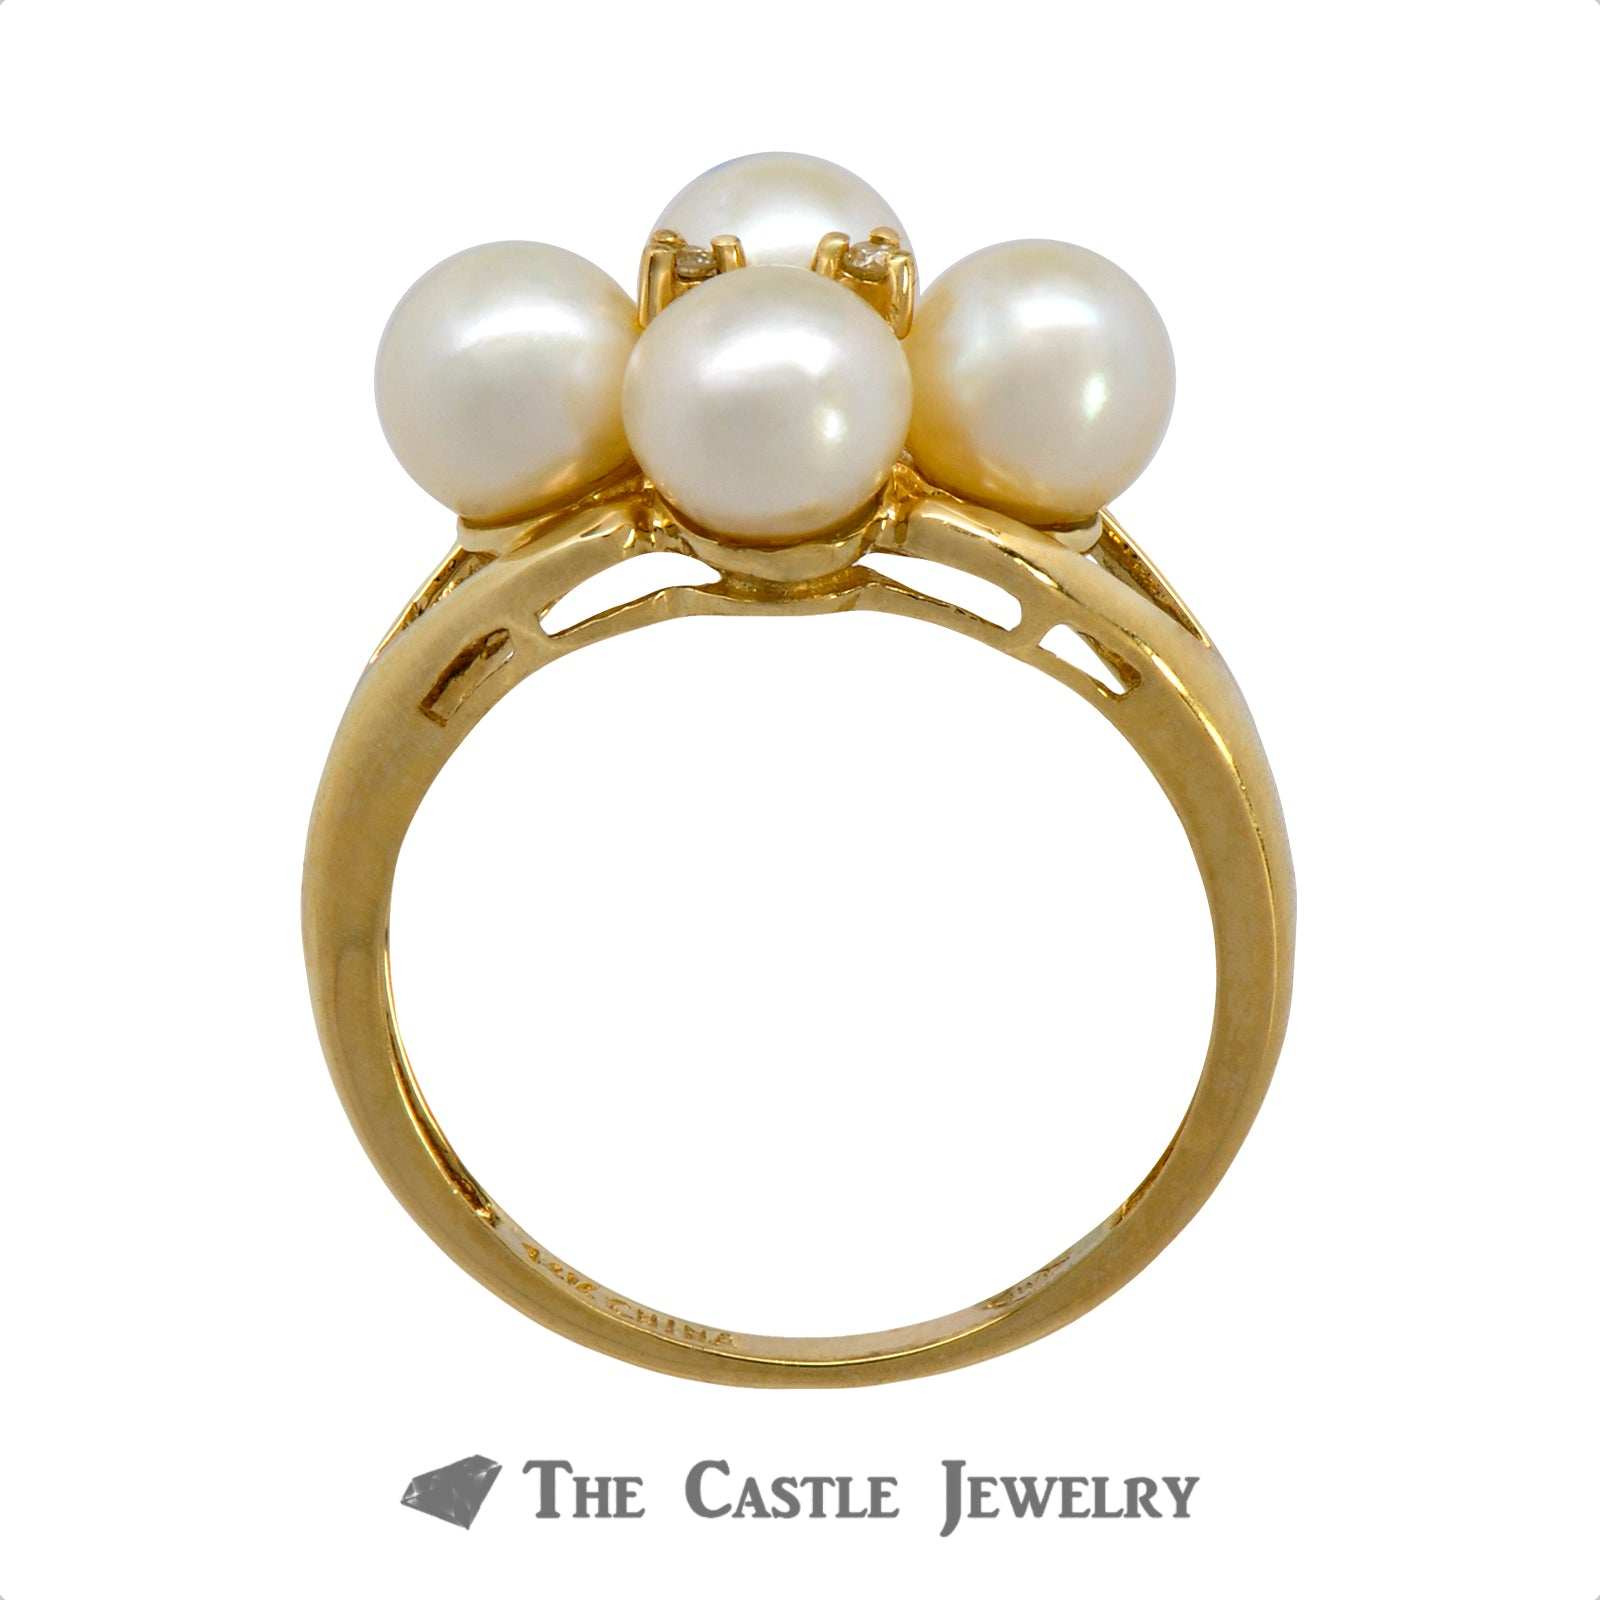 Quadruple 5.5mm Pearl Ring with Diamond Accents Crafted in 14k Yellow Gold-1